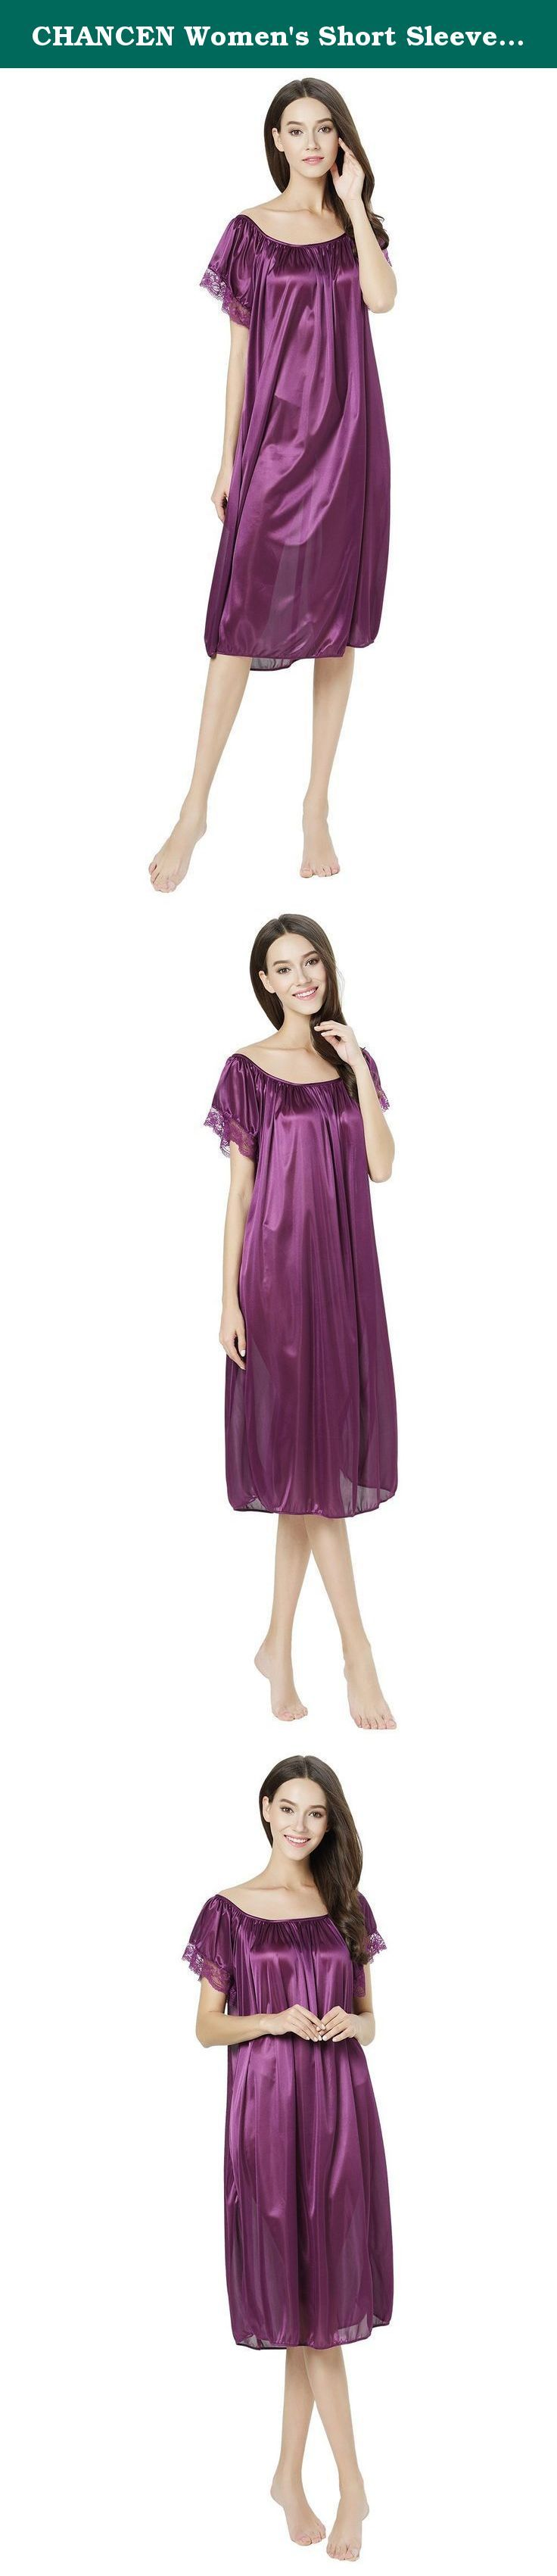 CHANCEN Women's Short Sleeve Lace Trim Satin Silky Long Nightgown Sleepwear Dress (Purple). 100% polyester. Lace trim short sleeves. Silky feeling. Total length:39 inches. One size fits XS-L. Total length:39 inches; The armholes are about 15.7 inches. Most women could get them on.